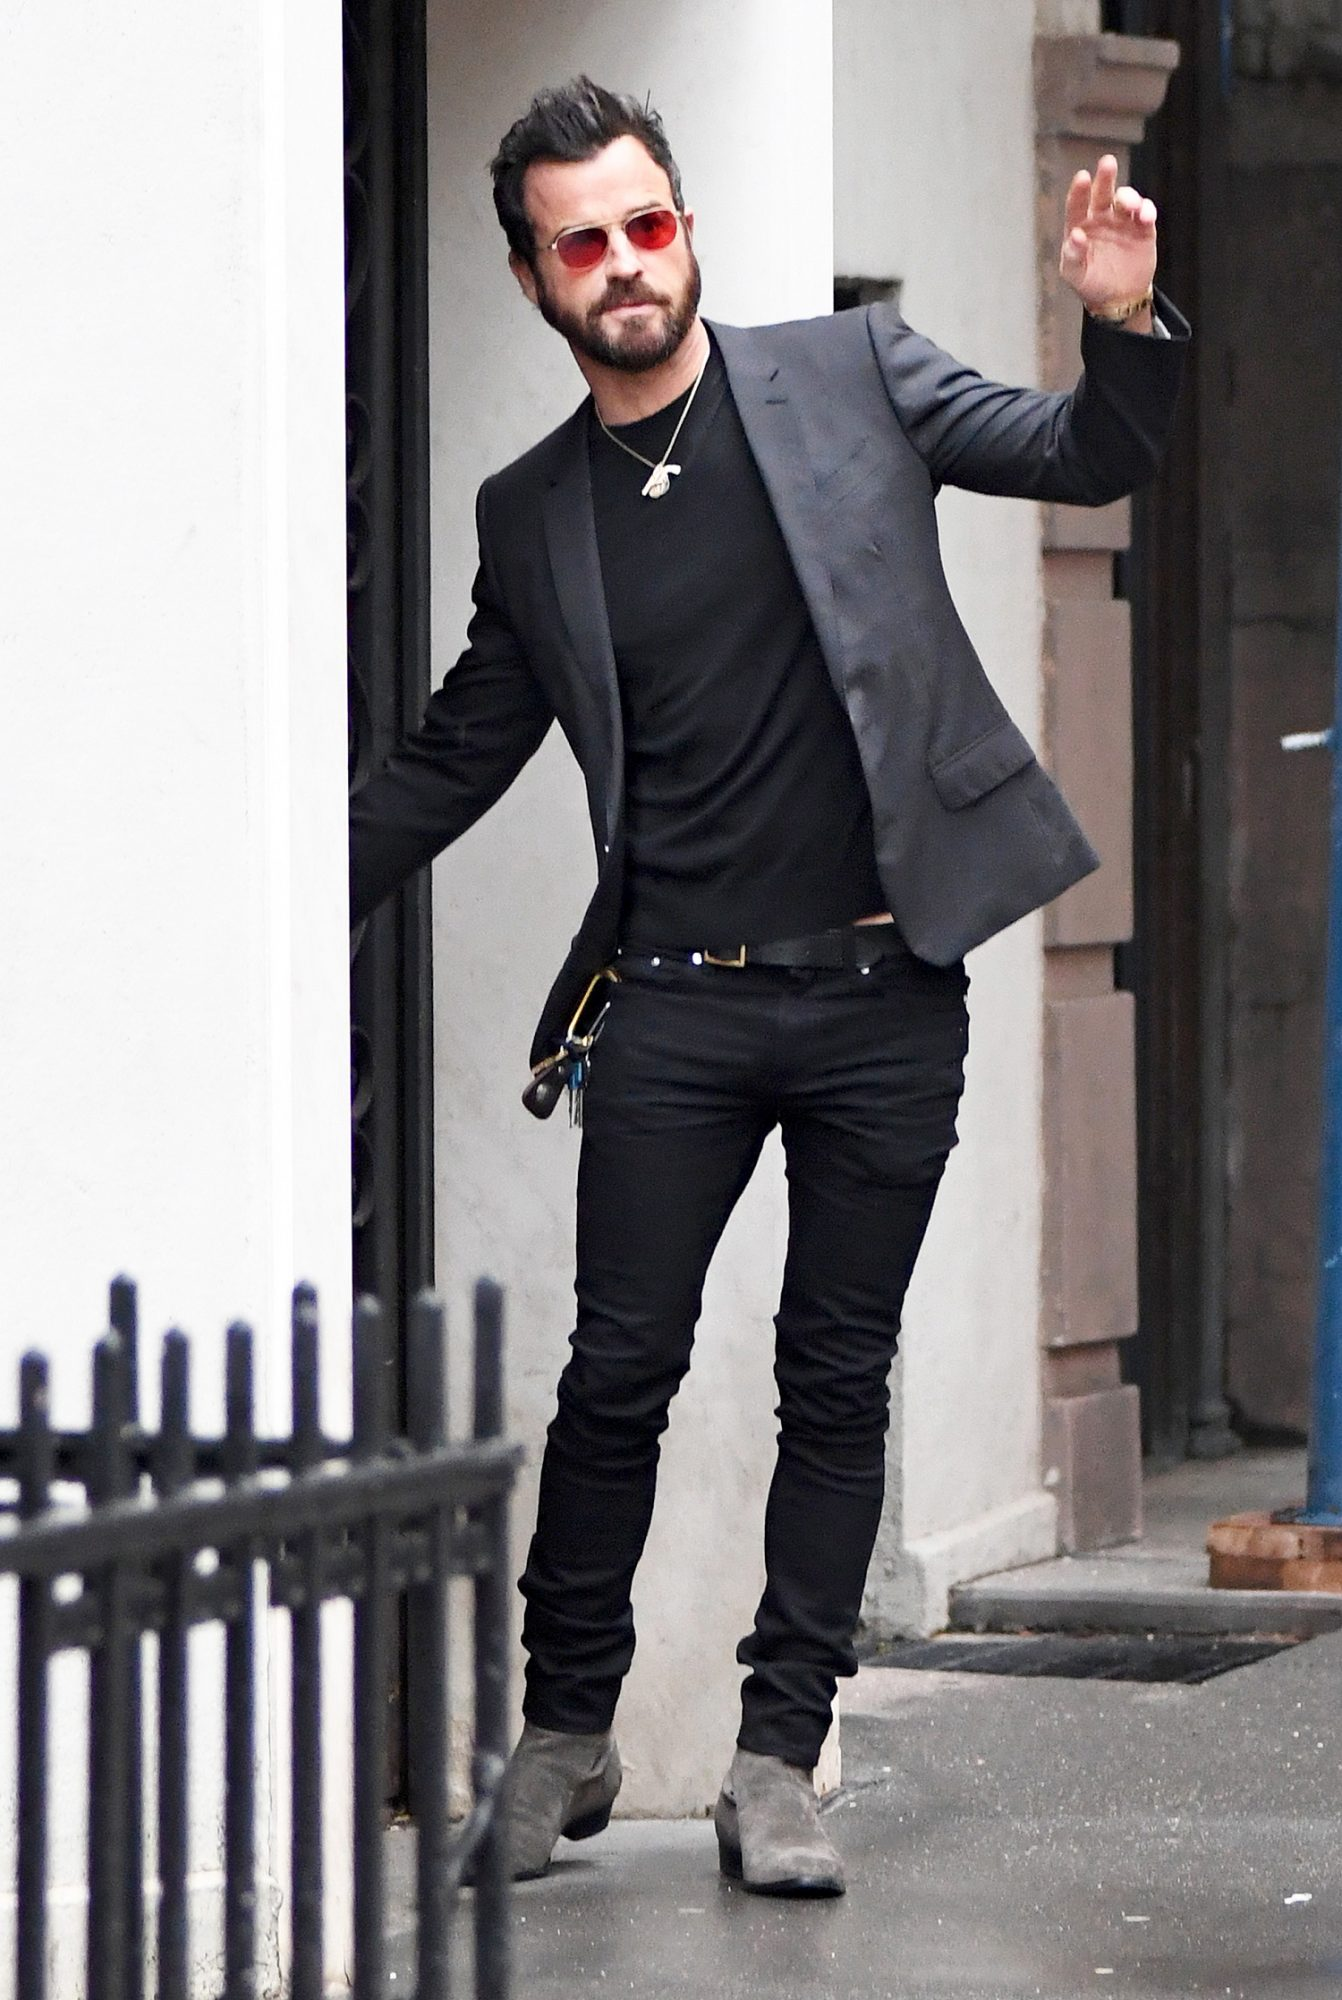 EXCLUSIVE: Justin Theroux Spotted leaving his Apartment and heading to Good Morning America